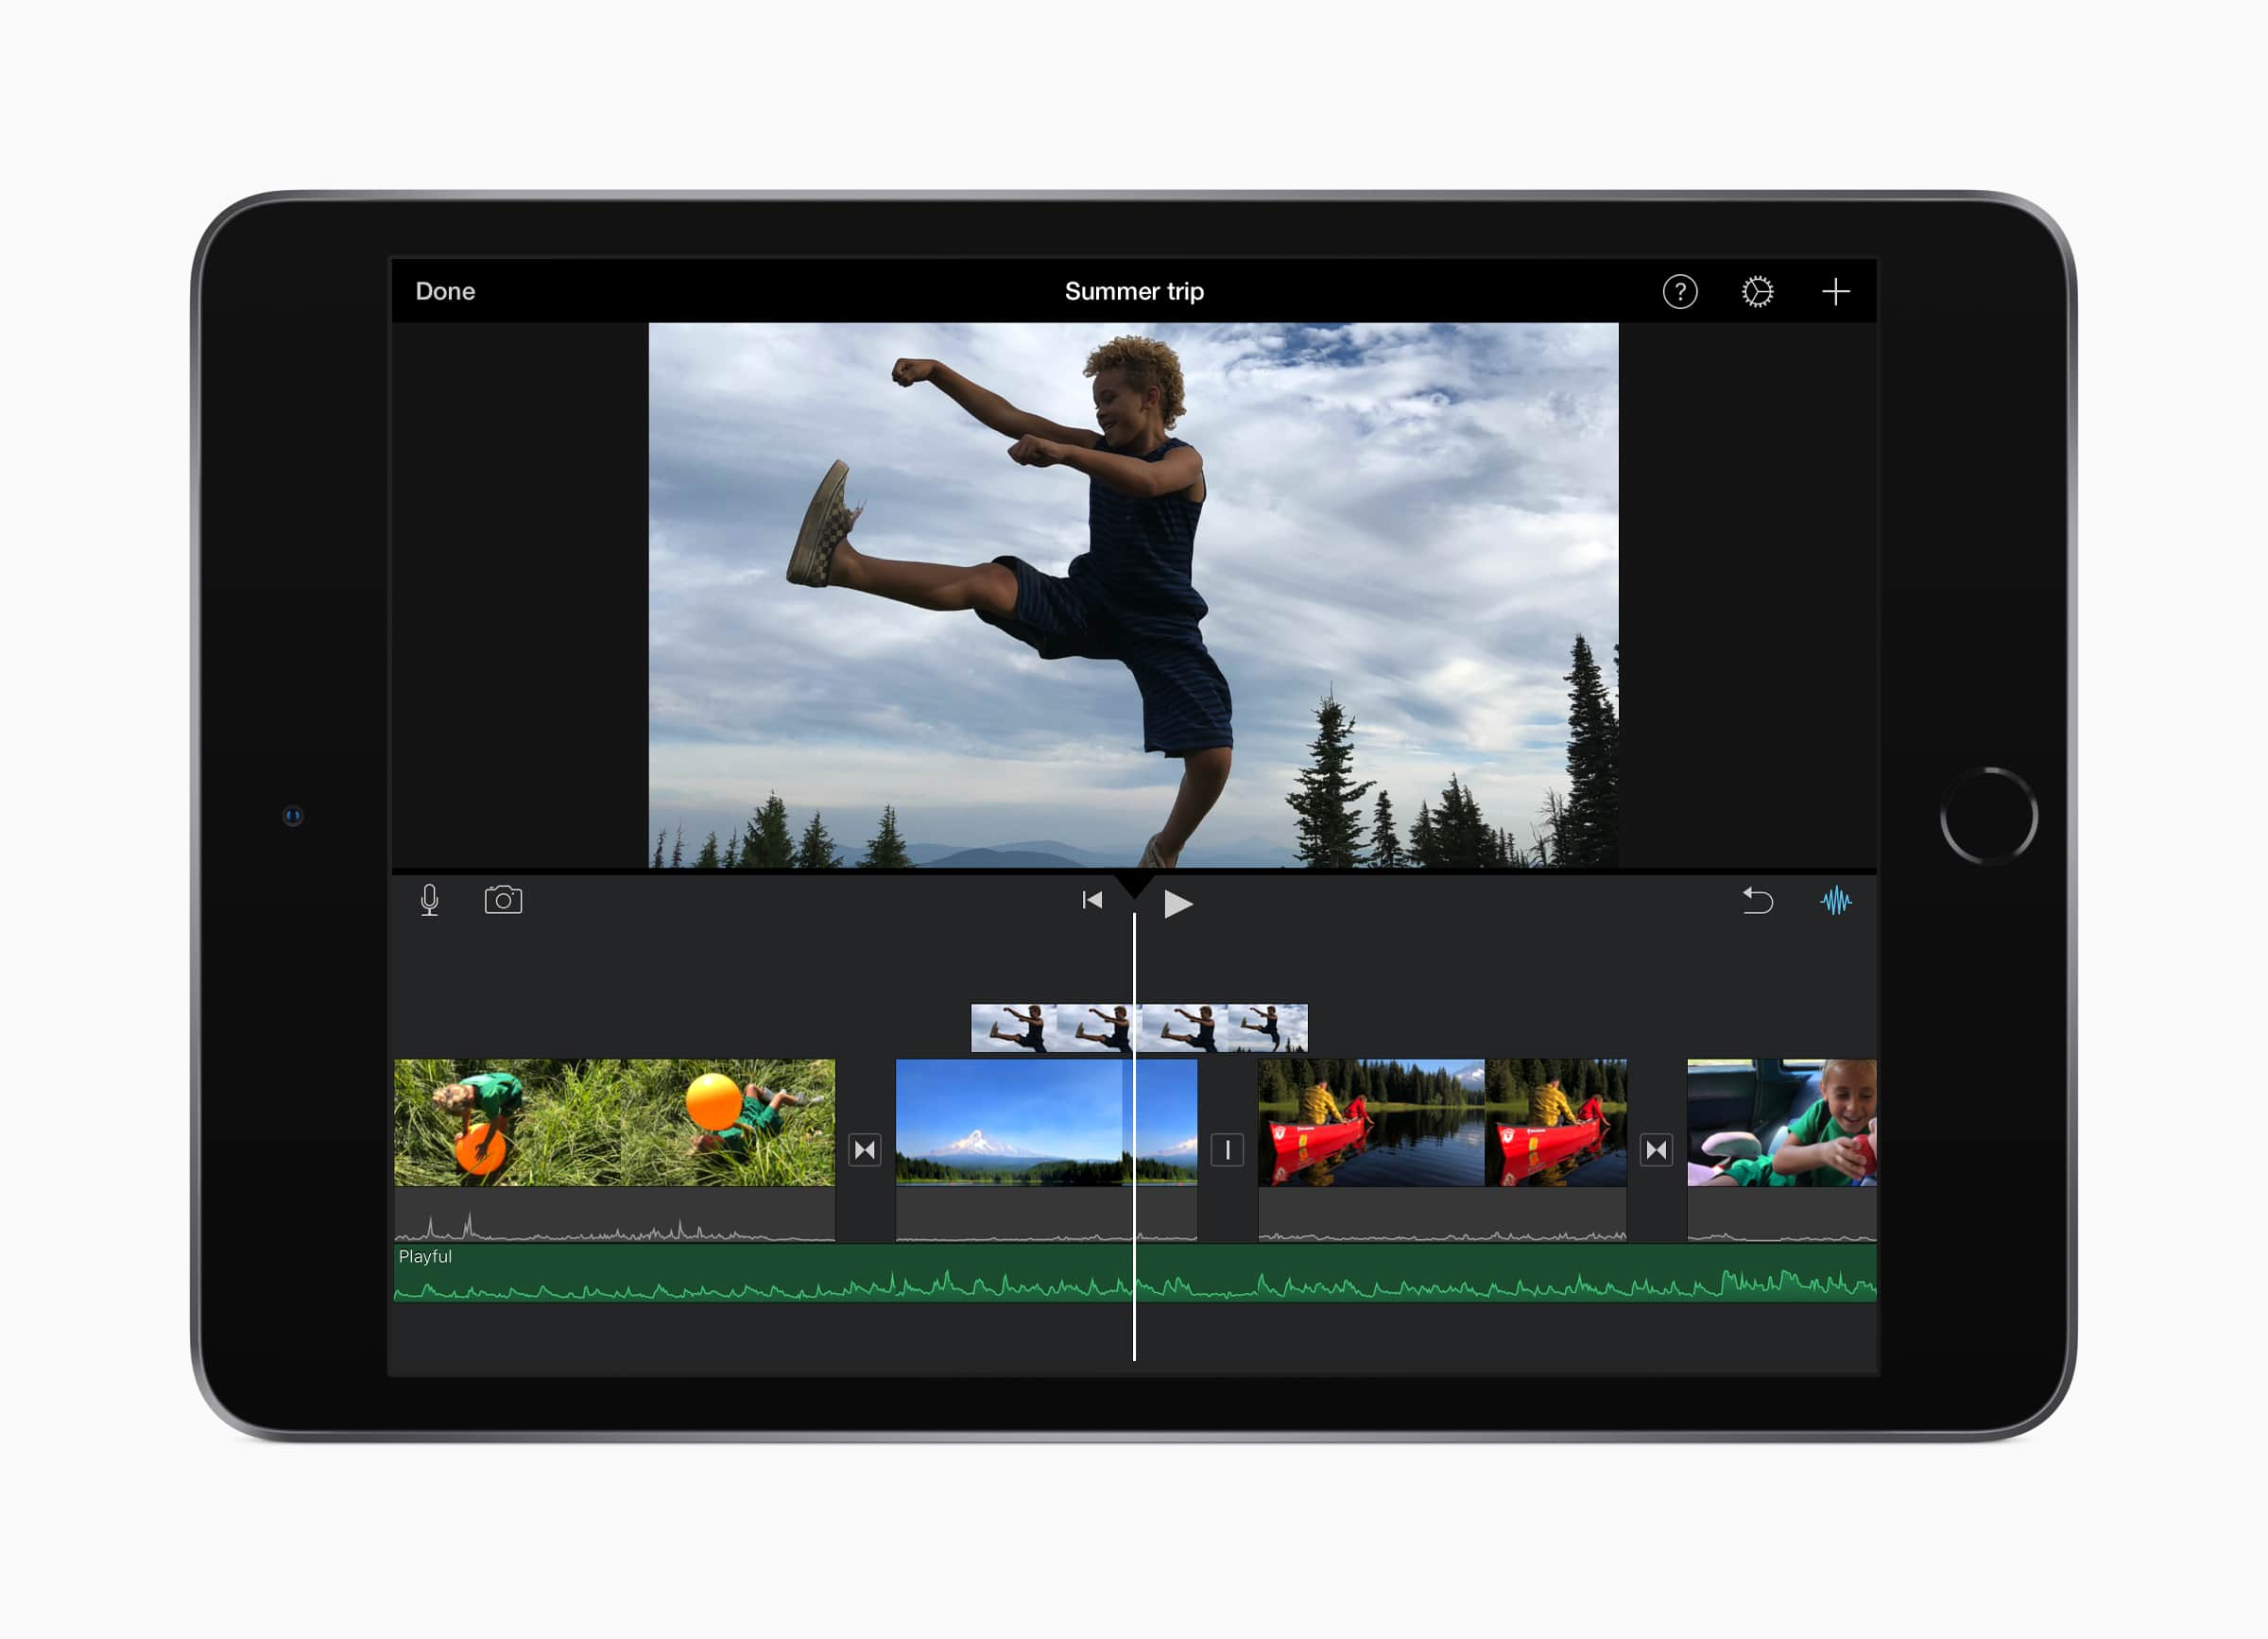 The new iPad mini can capture high-resolution video and photos. Plus, its powerful A12 Bionic chip makes editing 4K films easy and smooth, Apple says.